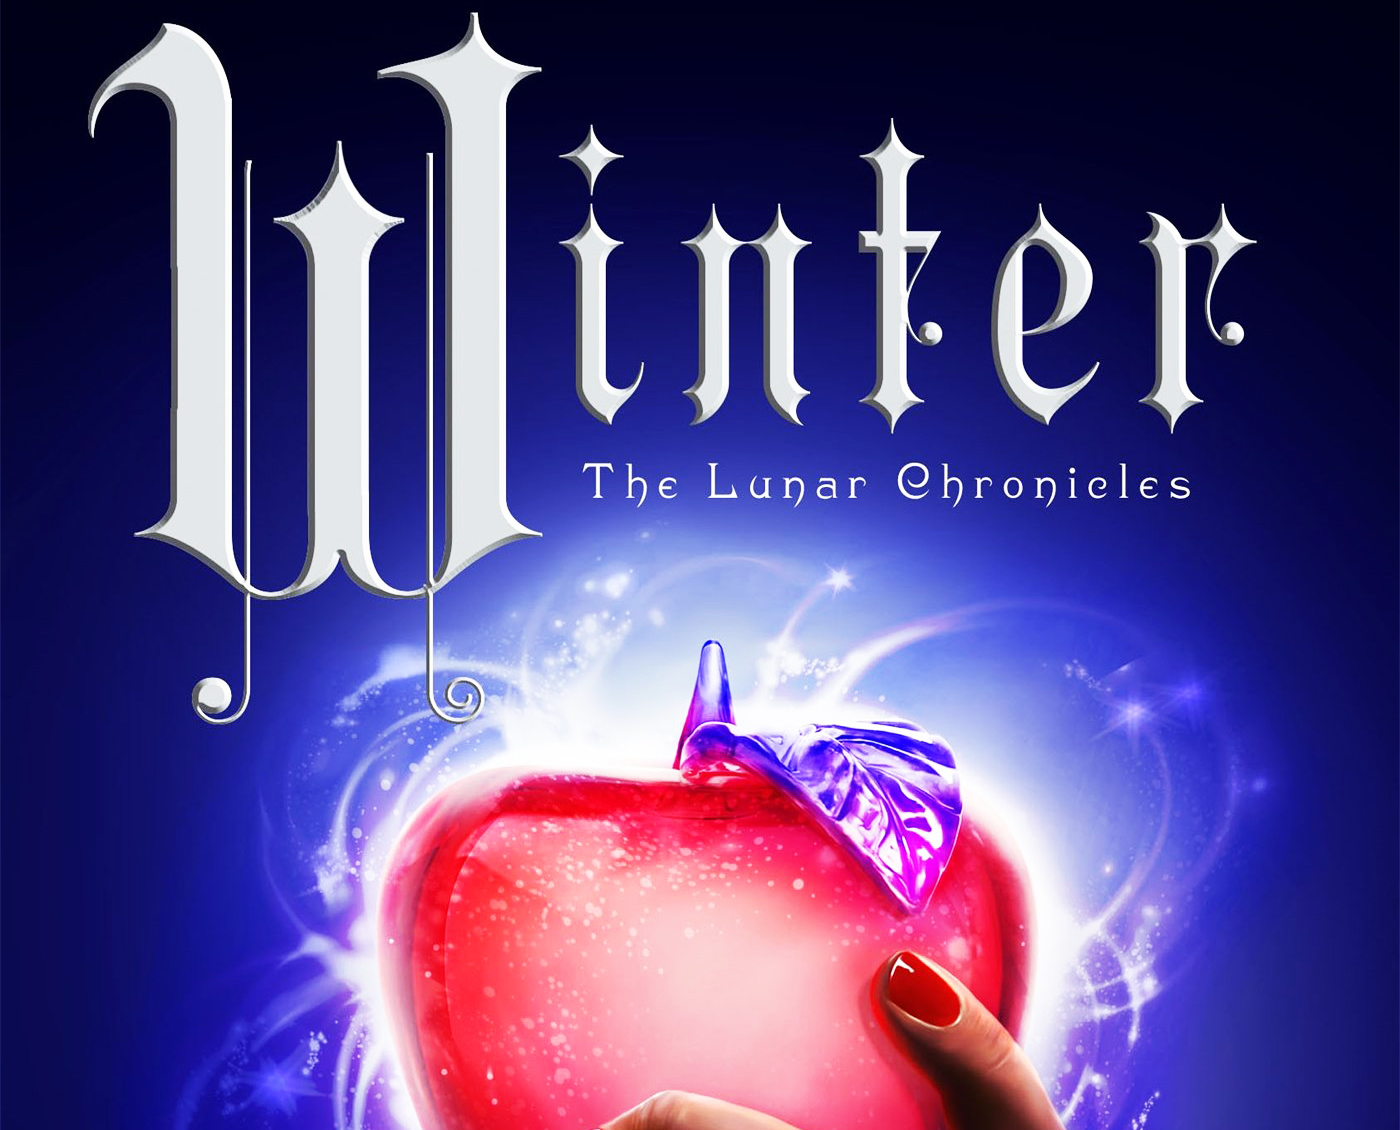 Winter Marissa Meyer The Lunar Chronicles